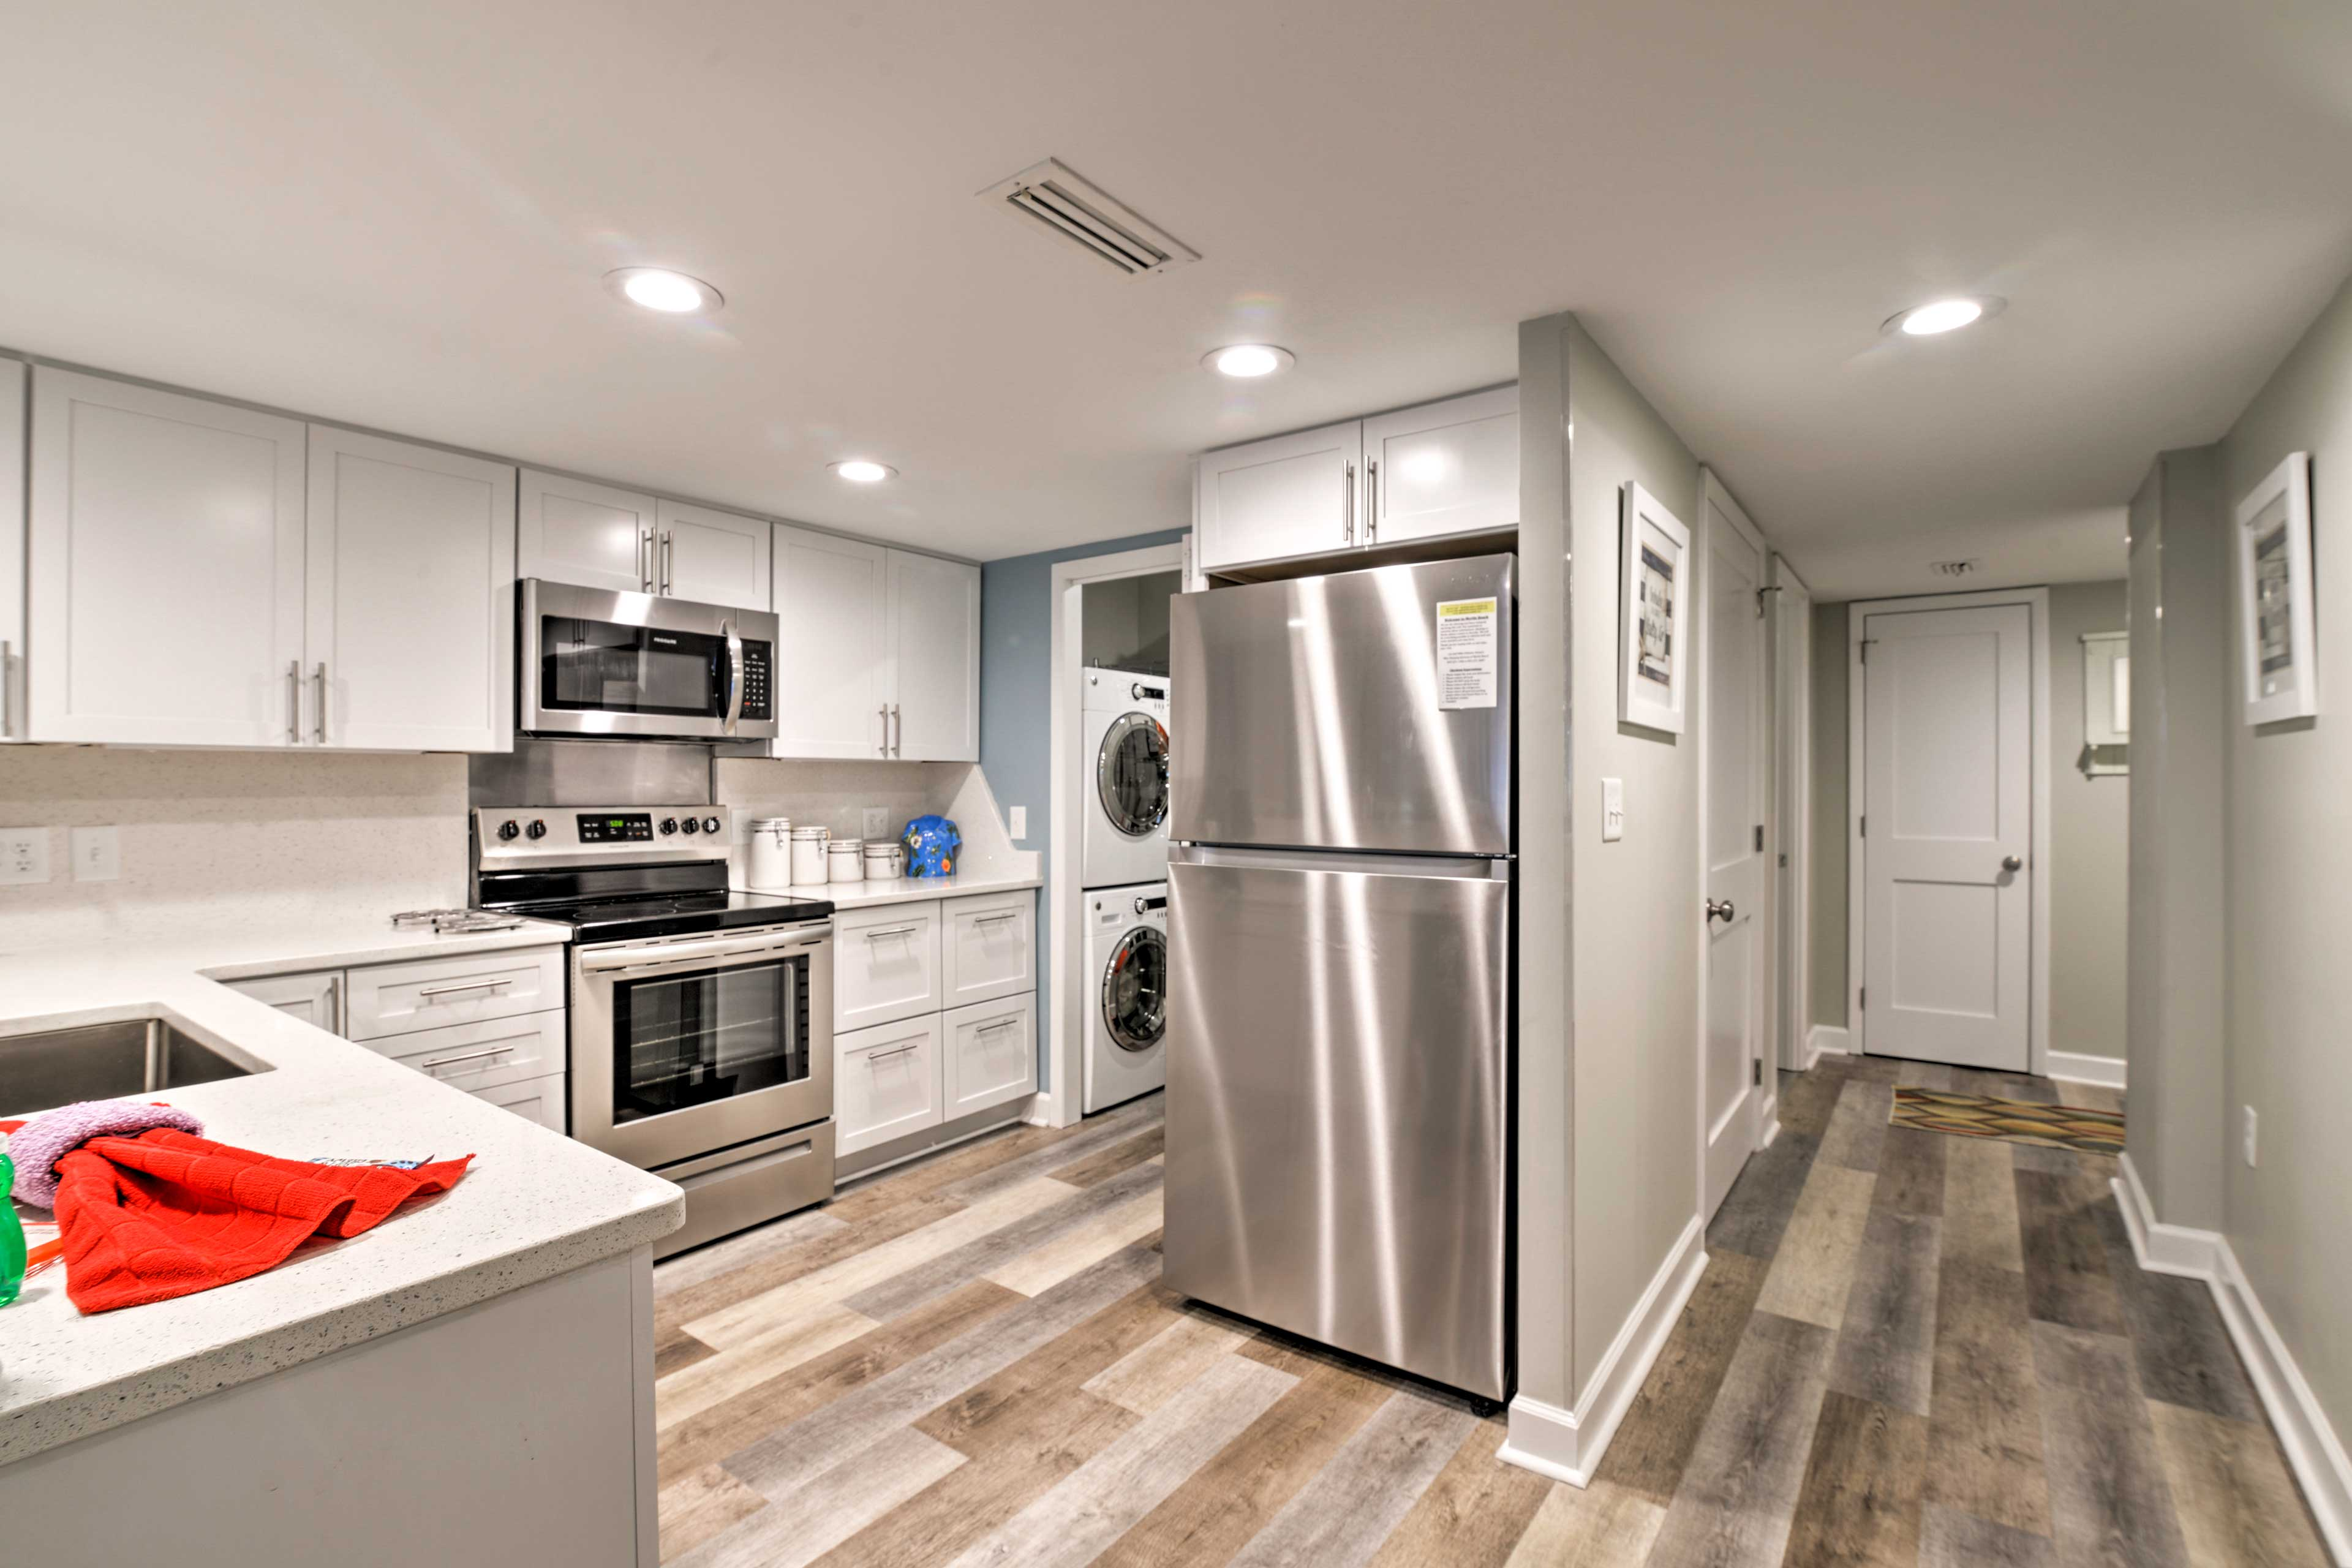 The in-unit laundry machines are located just off of the kitchen.